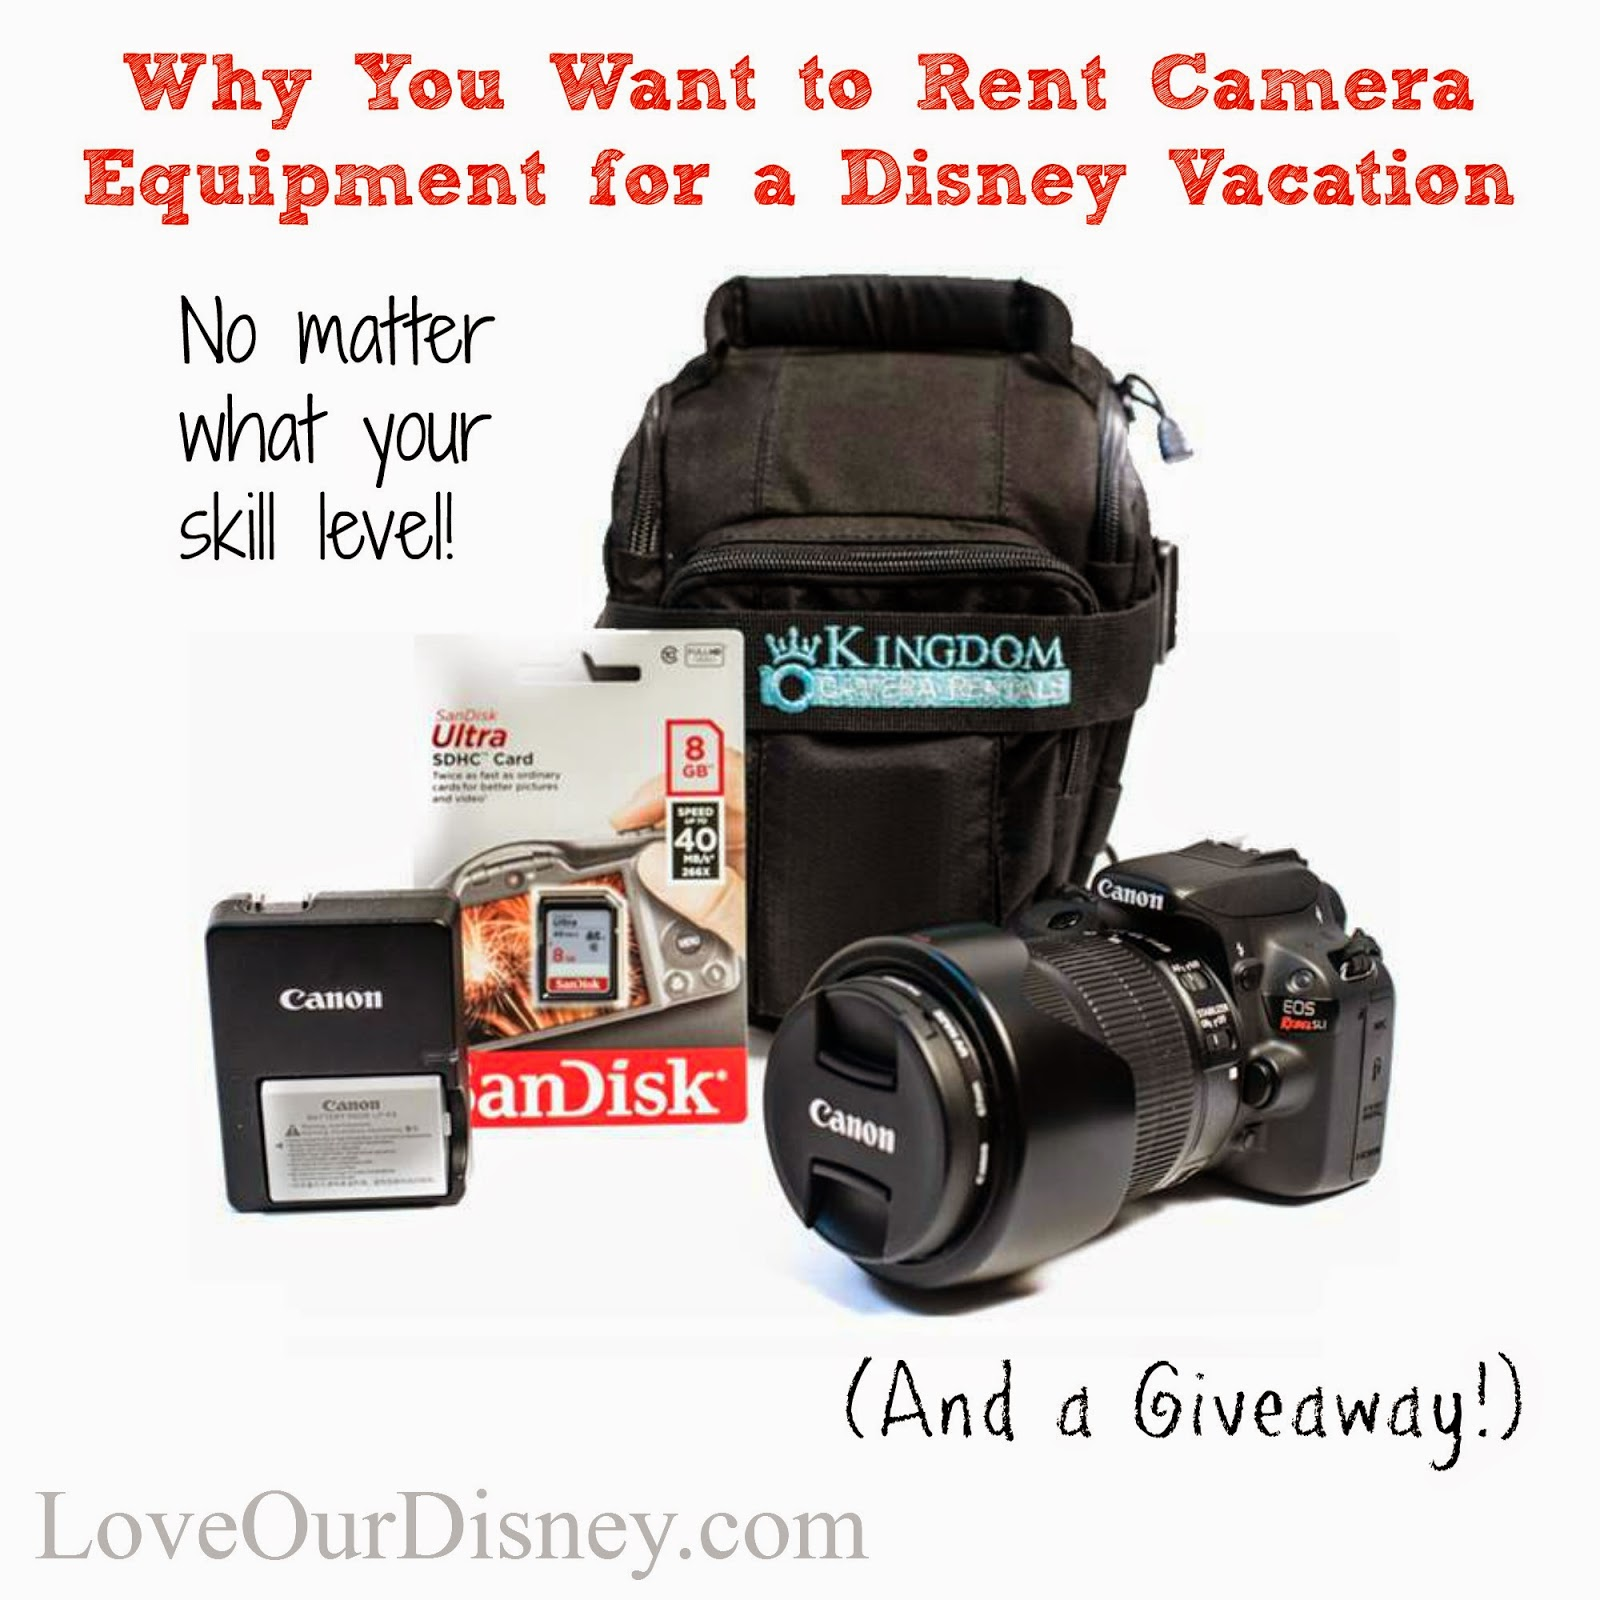 Why would anybody rent camera equipment, even if they are not a professional? LoveOurDisney.com